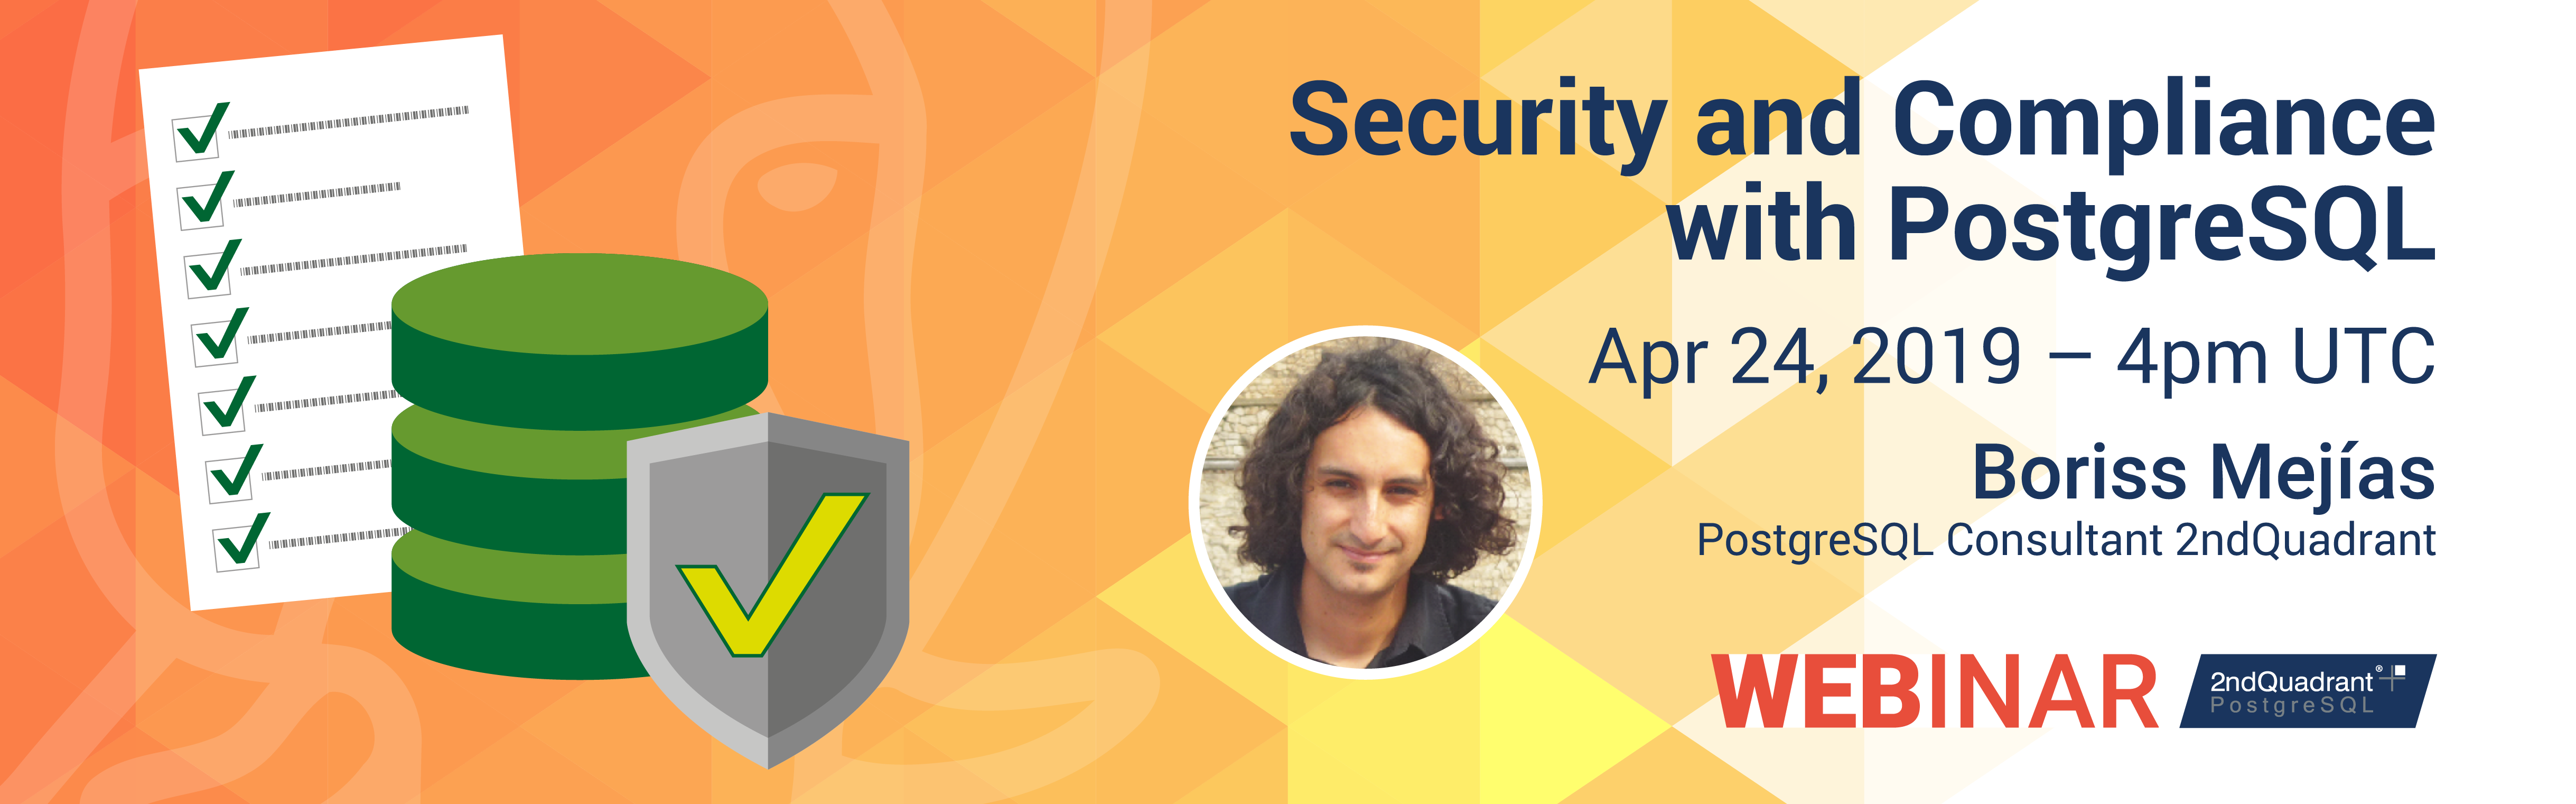 Security and Compliance with PostgreSQL Webinar